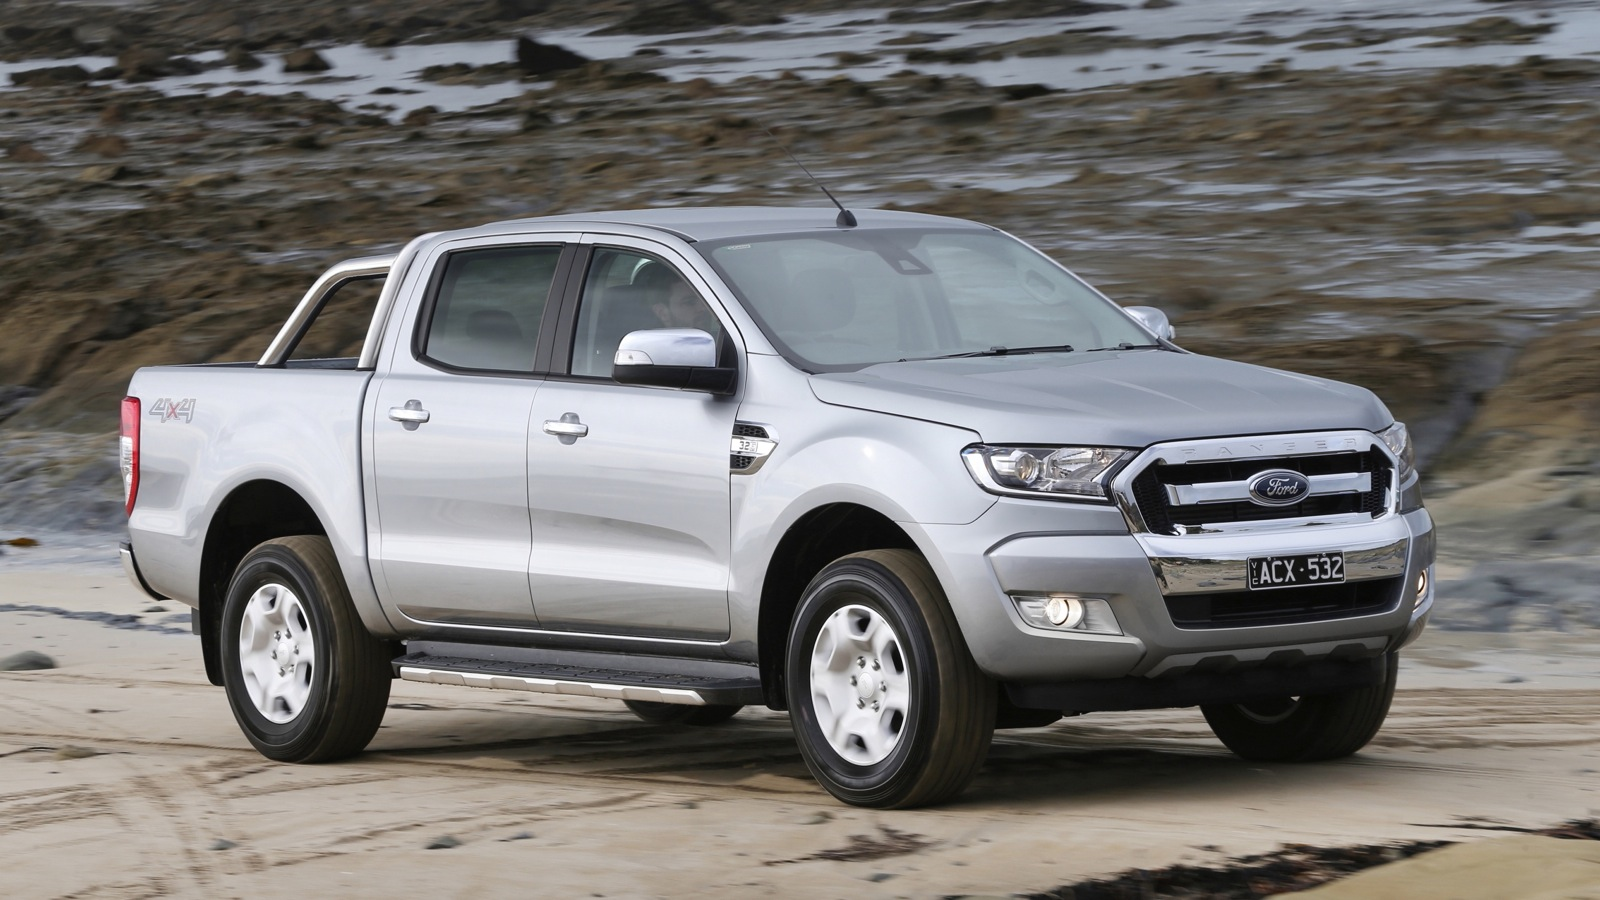 2016 ford ranger review photos caradvice. Black Bedroom Furniture Sets. Home Design Ideas